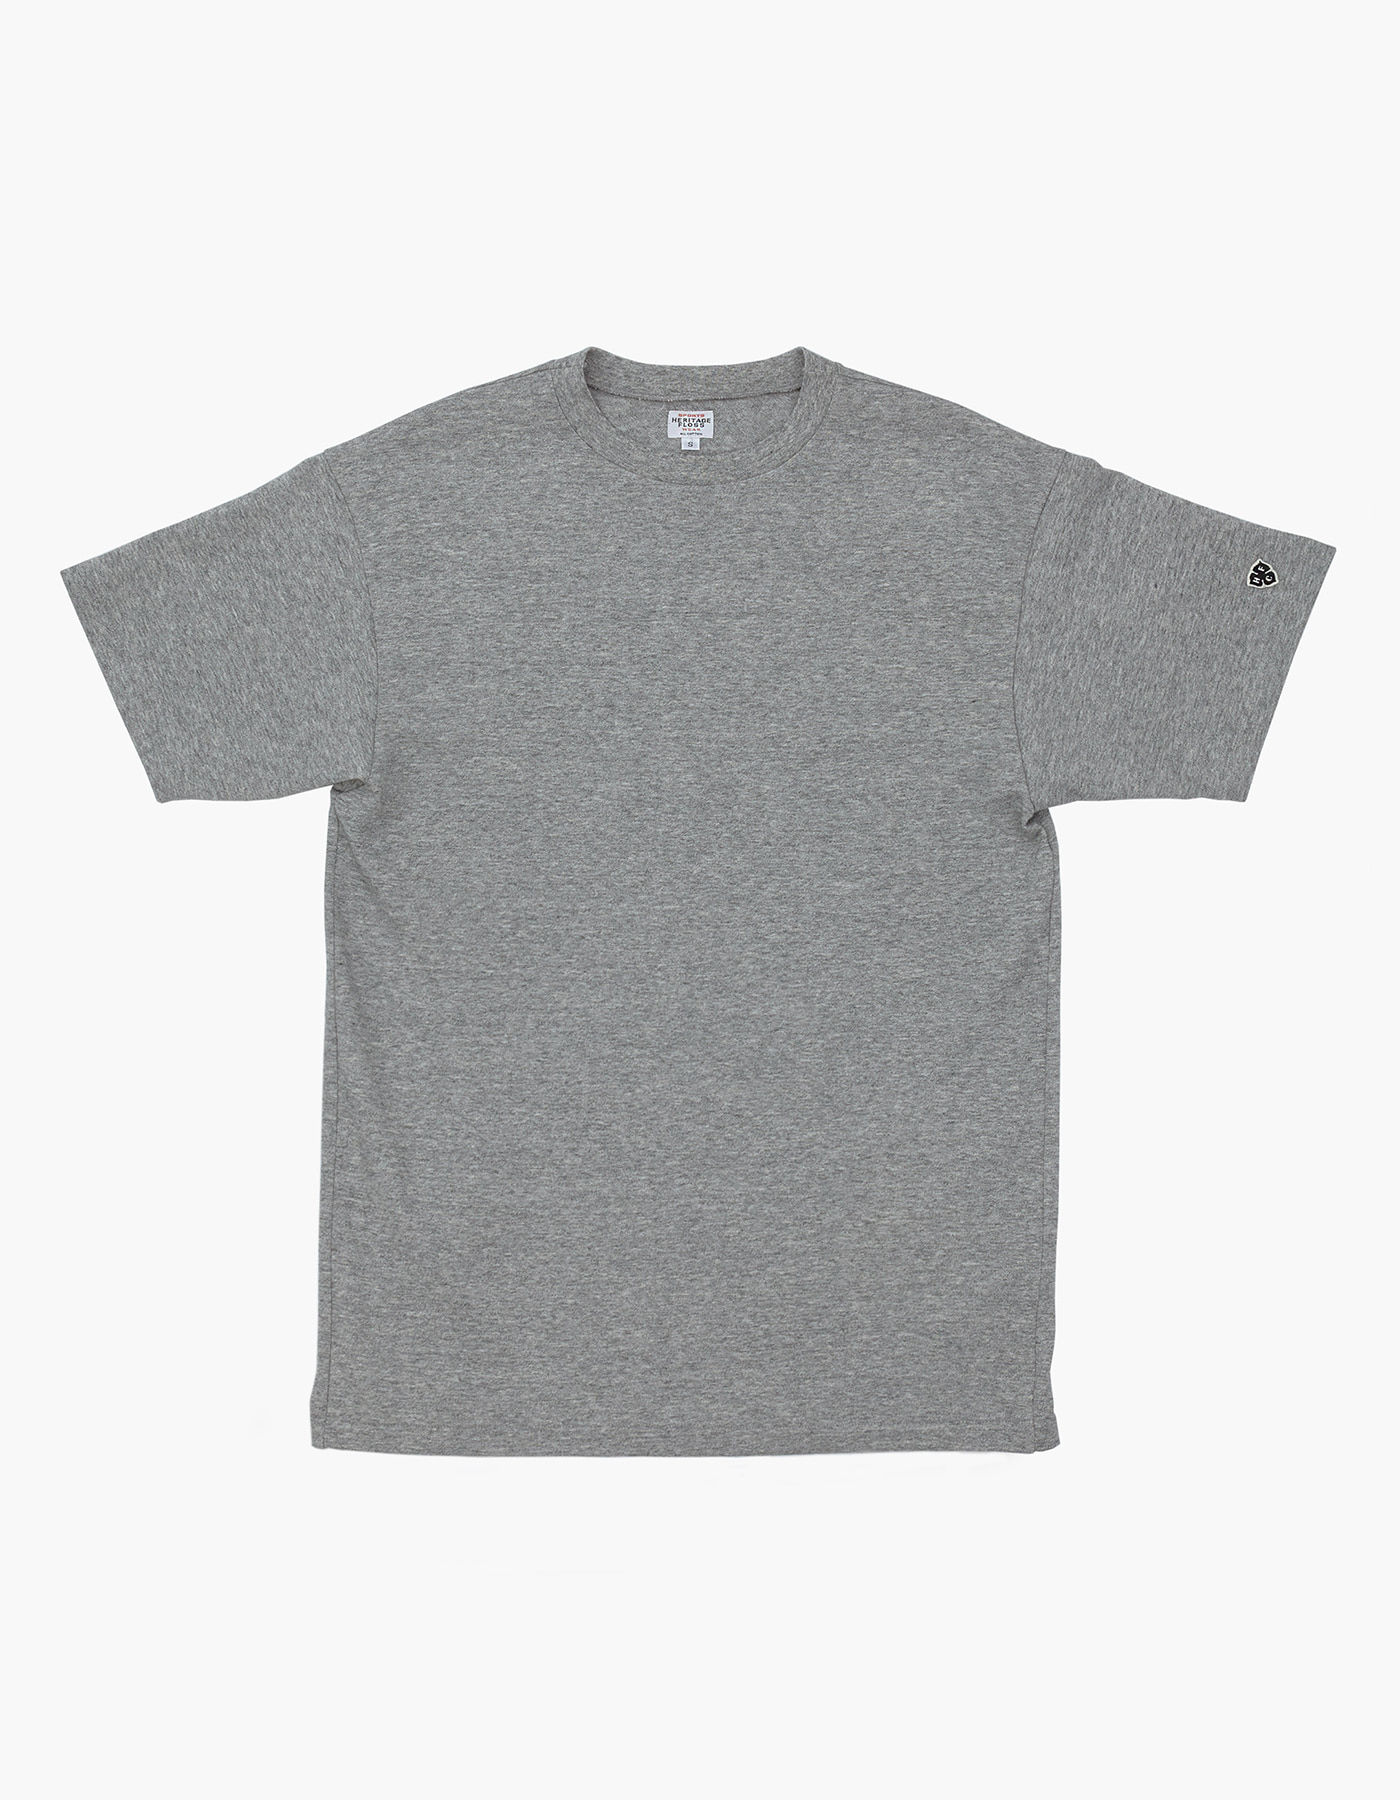 10S COMPACT YARN T-SHIRT / M.GREY